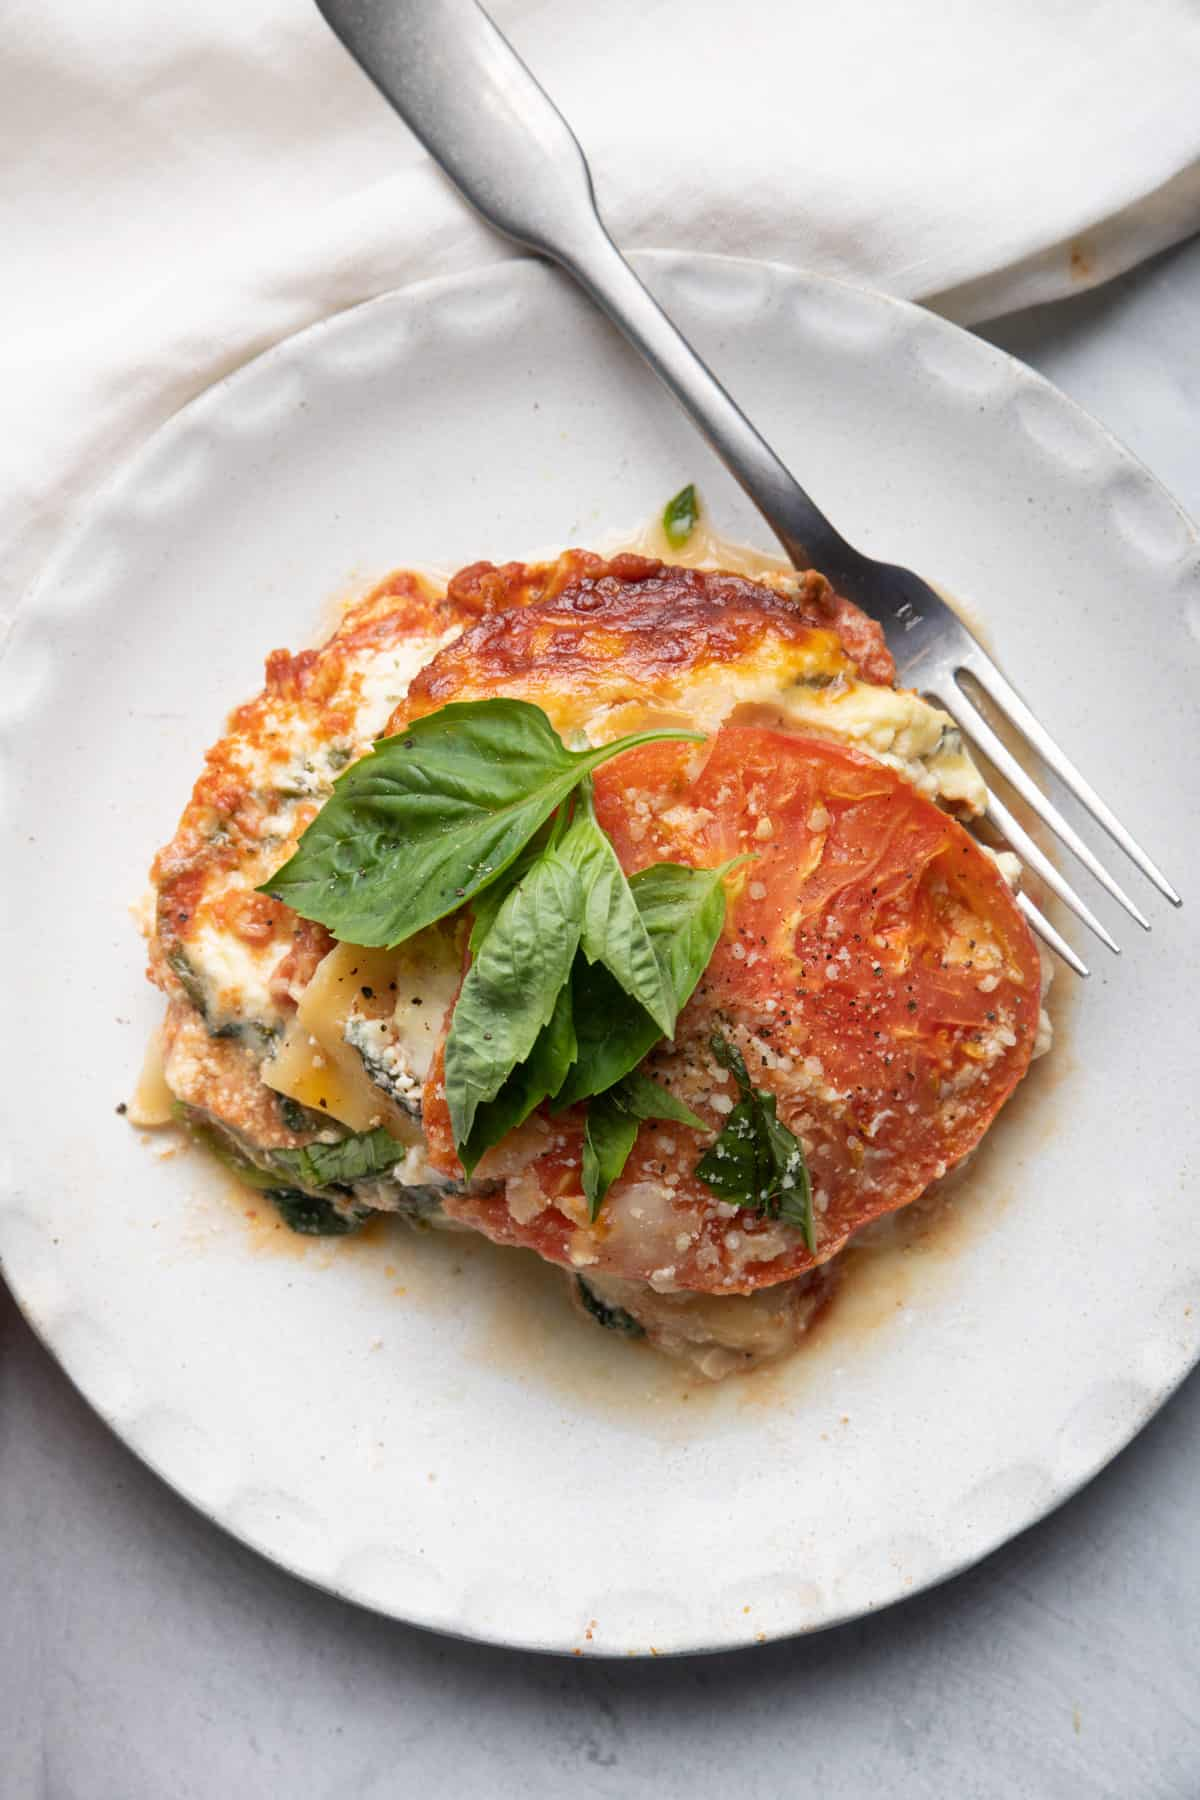 Plate with serving of tomato lasagna topped with basil